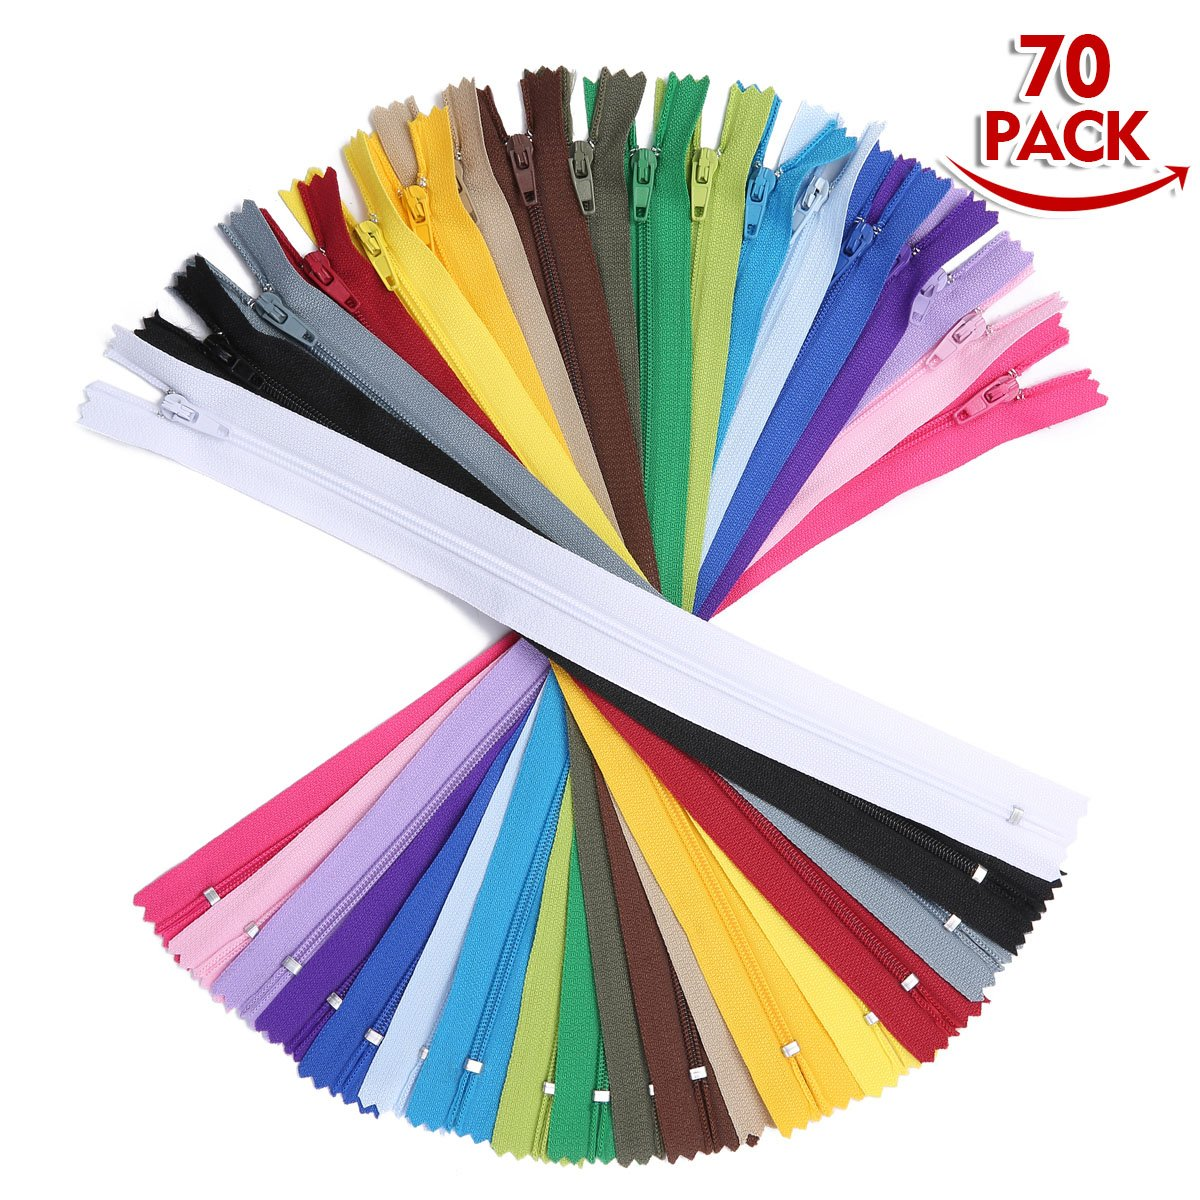 KINGSO 70Pcs 16 inch Nylon Invisible Coil Zippers Bulk Tailor Tools Garment Accessories for Sewing Crafts 20 Colors KINGSOokiuhg3327